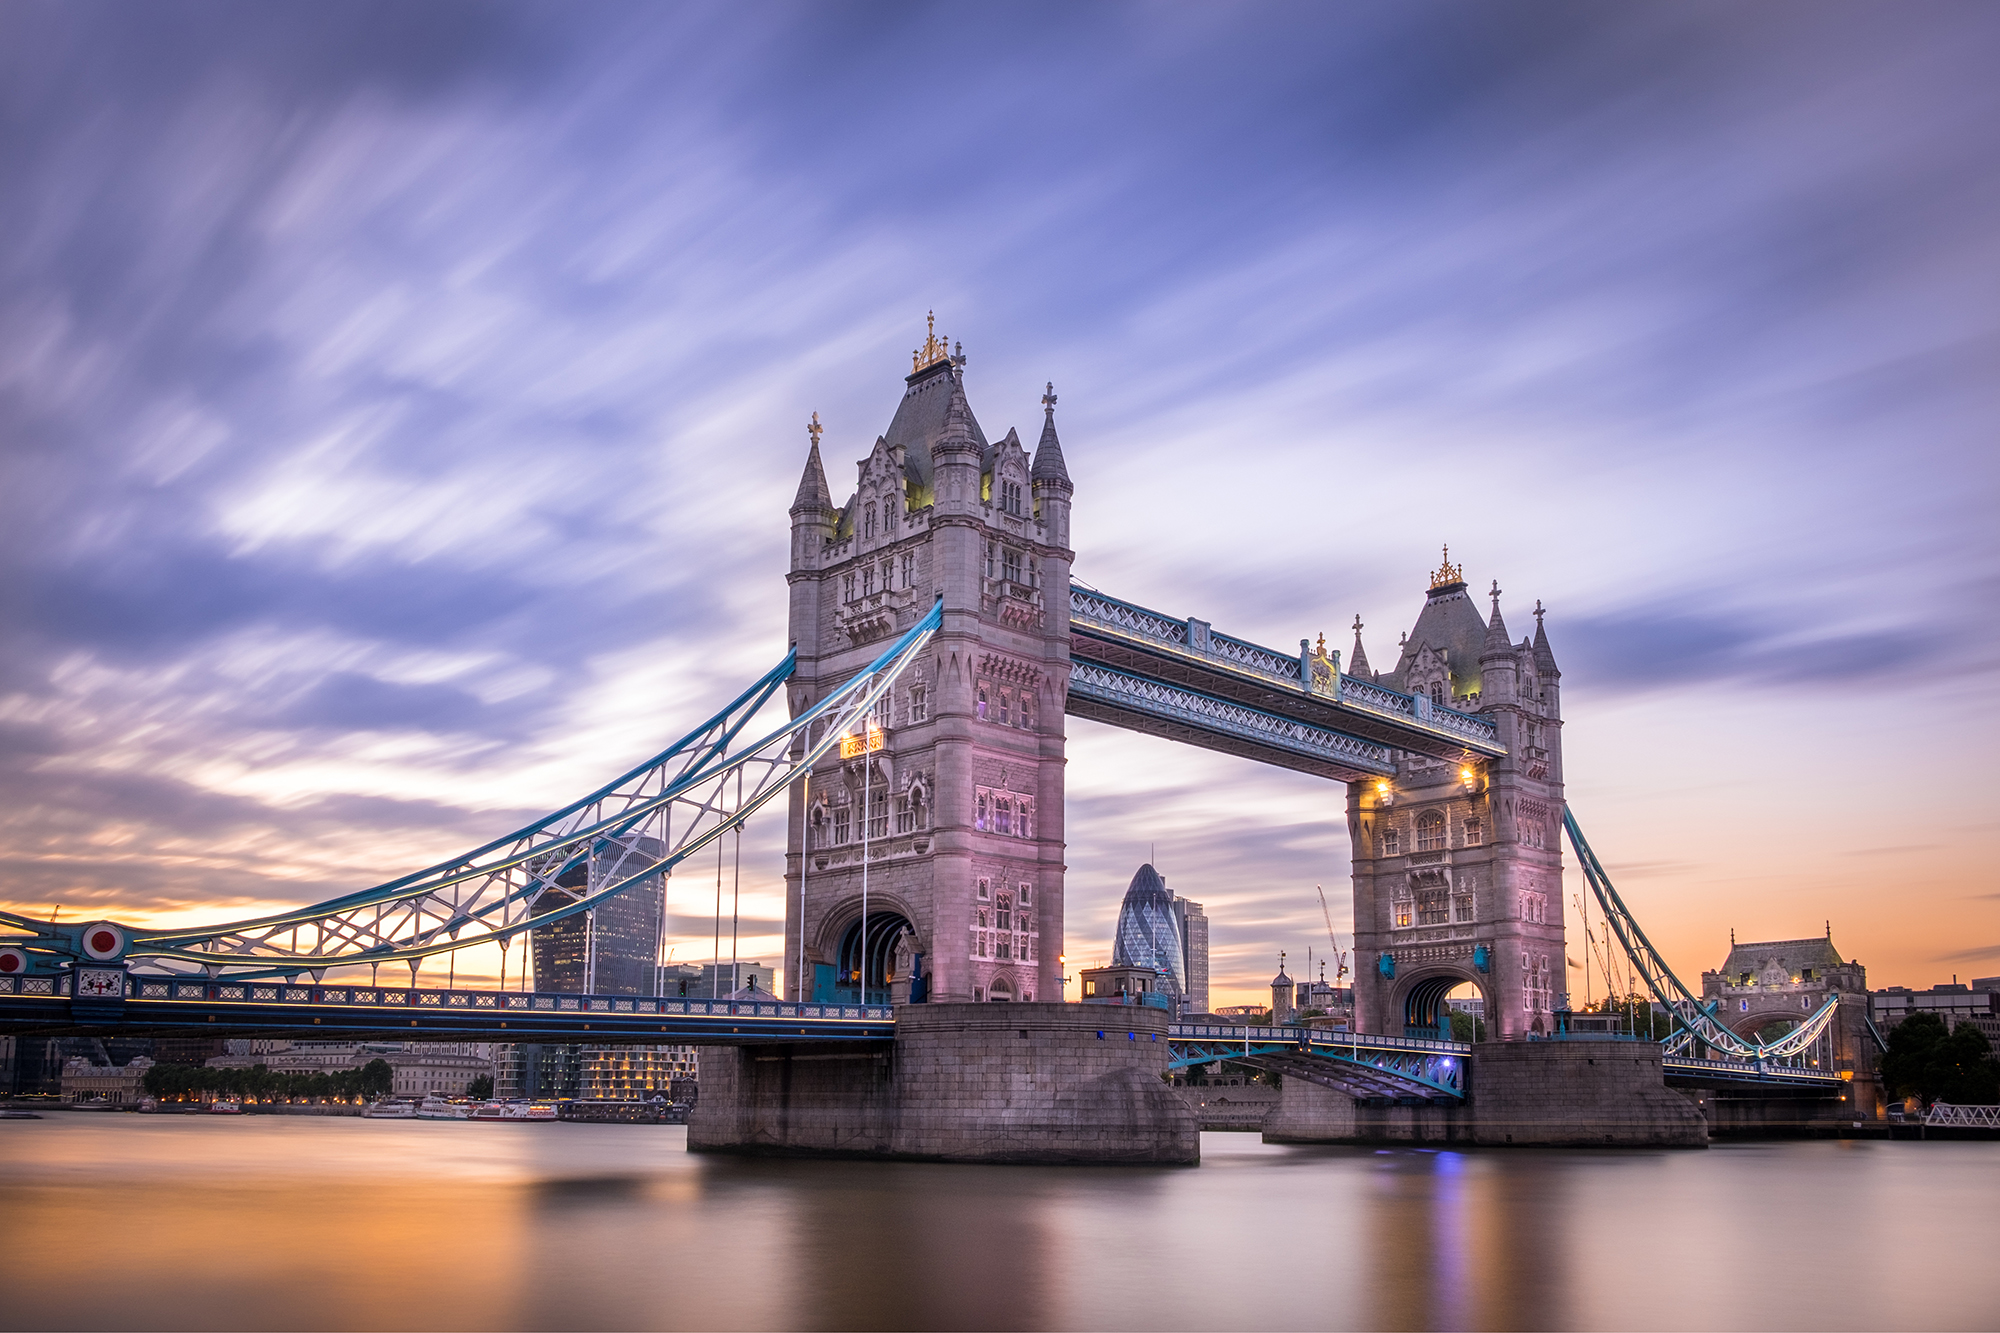 Sunset photo of Tower Bridge in the summer by Trevor Sherwin